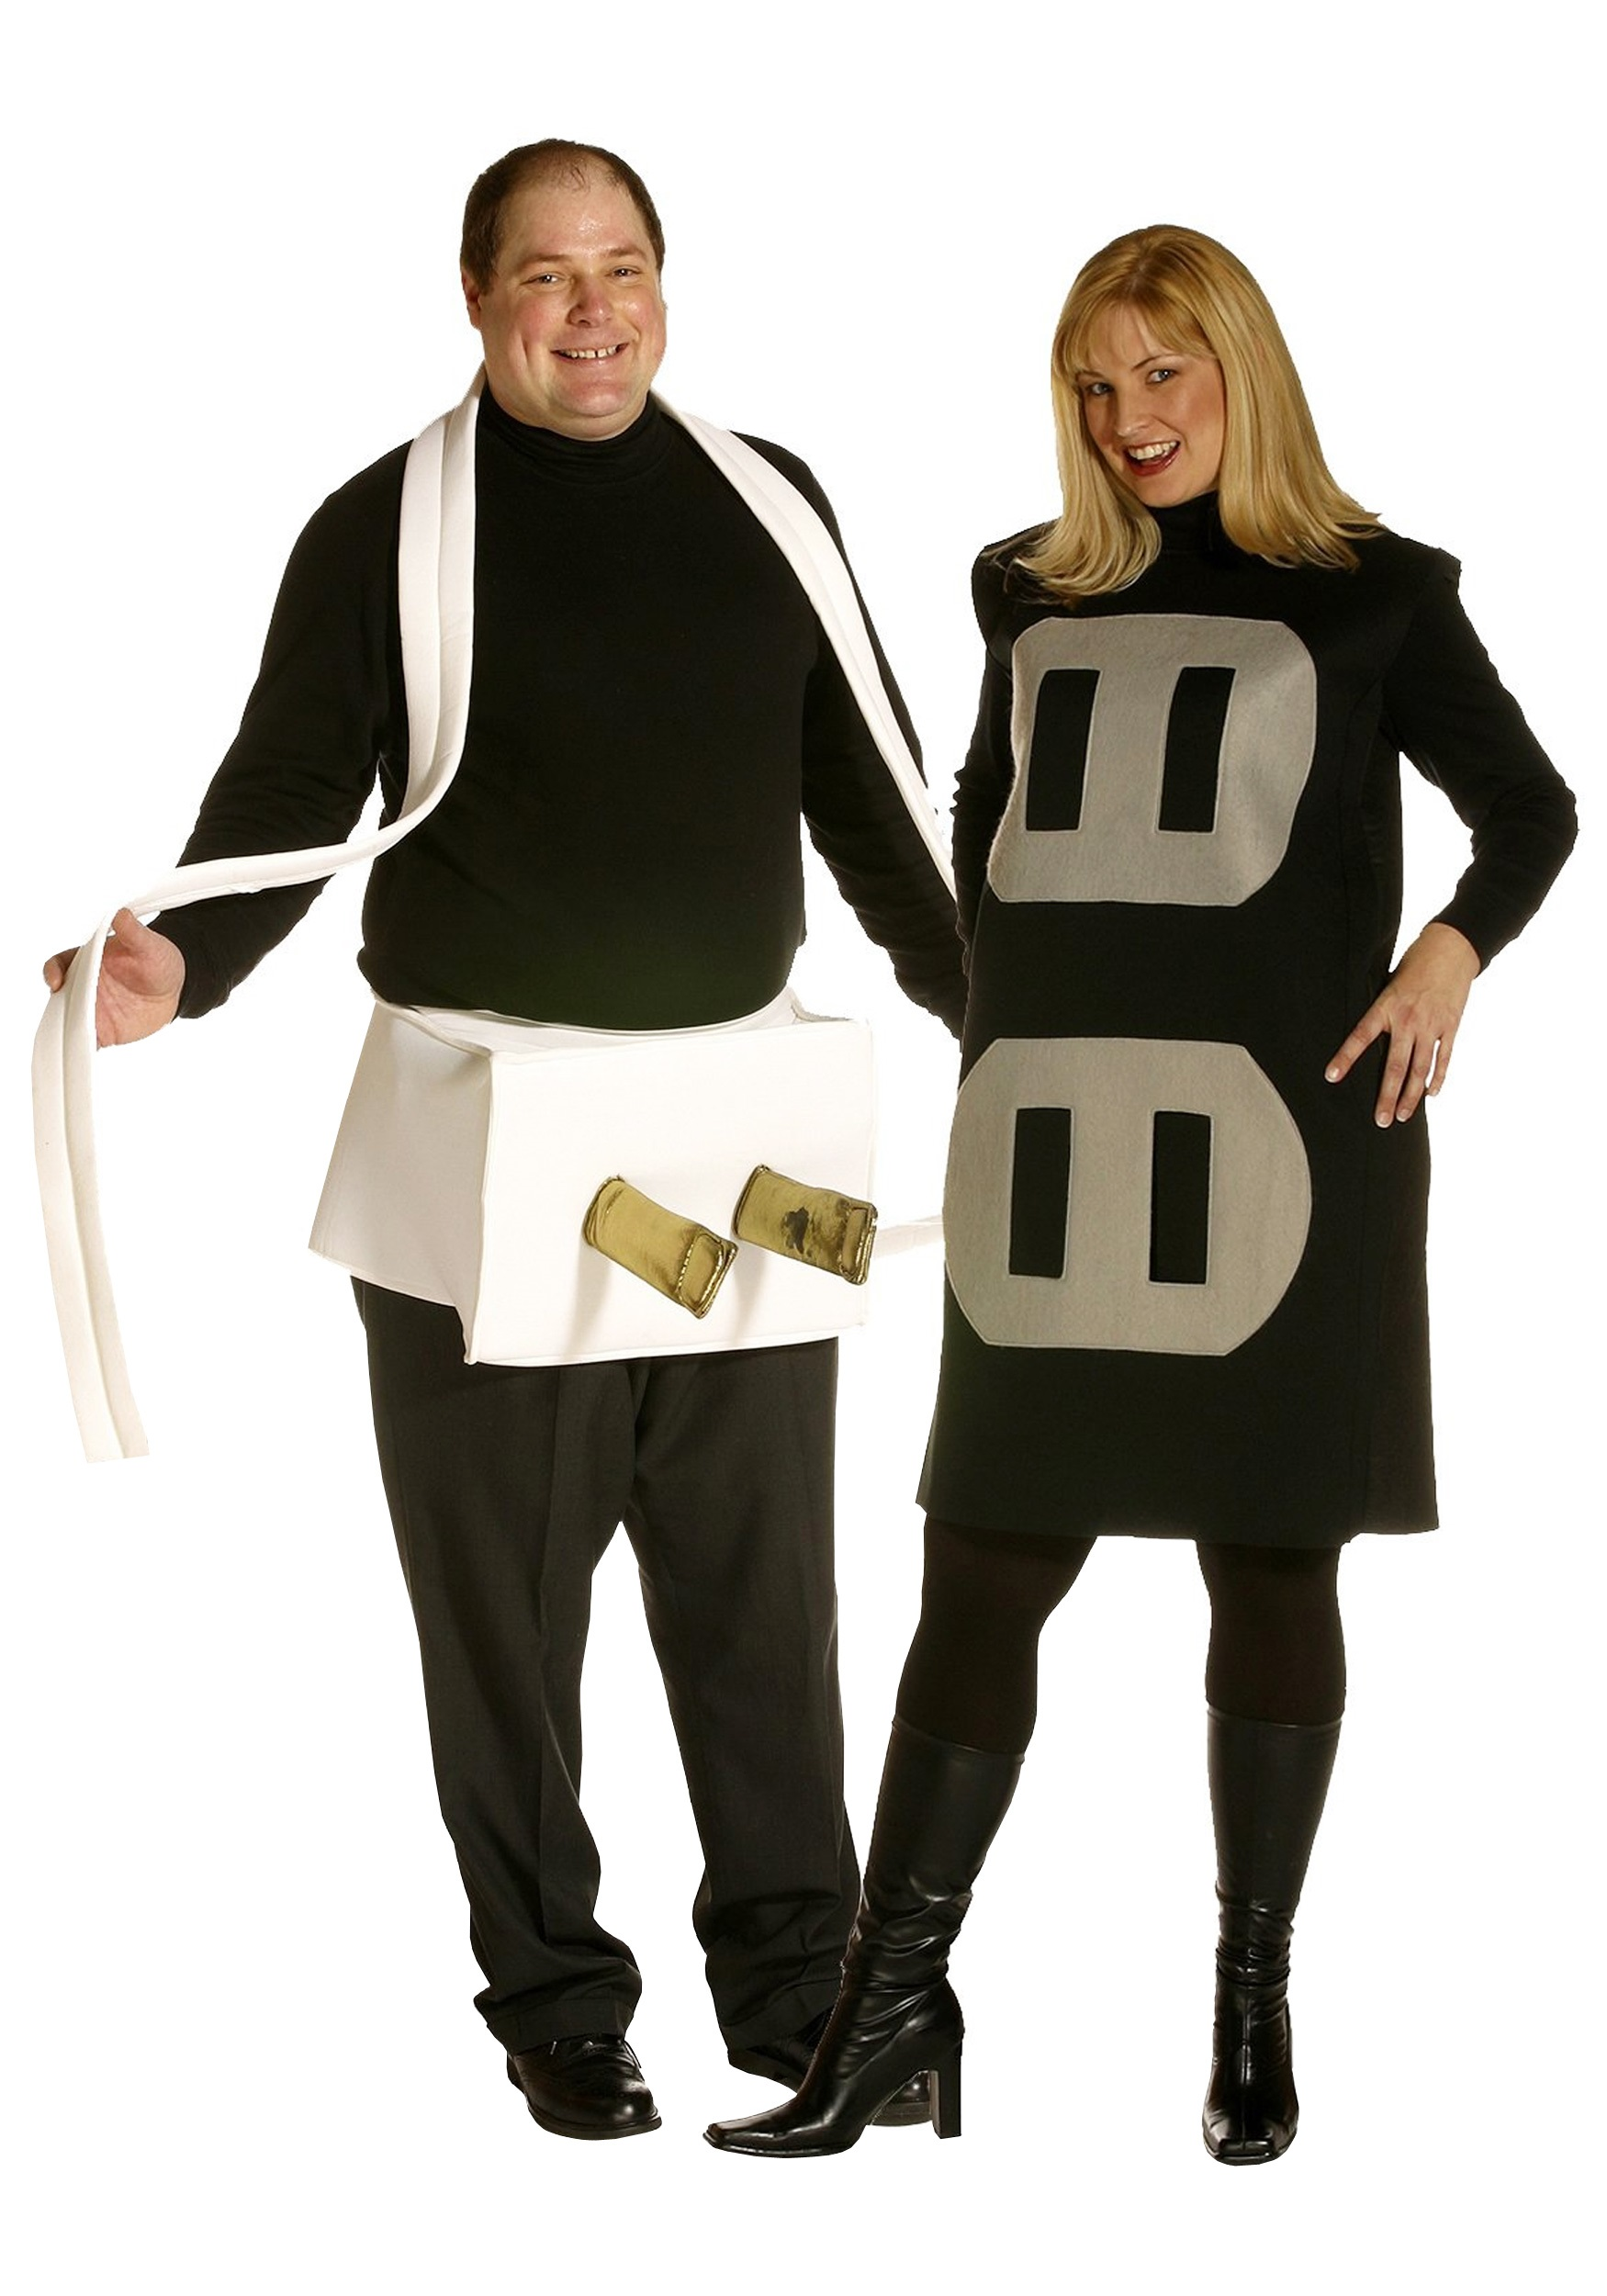 a41dc9b4eb67 Plus Size Plug and Socket Couple Costume